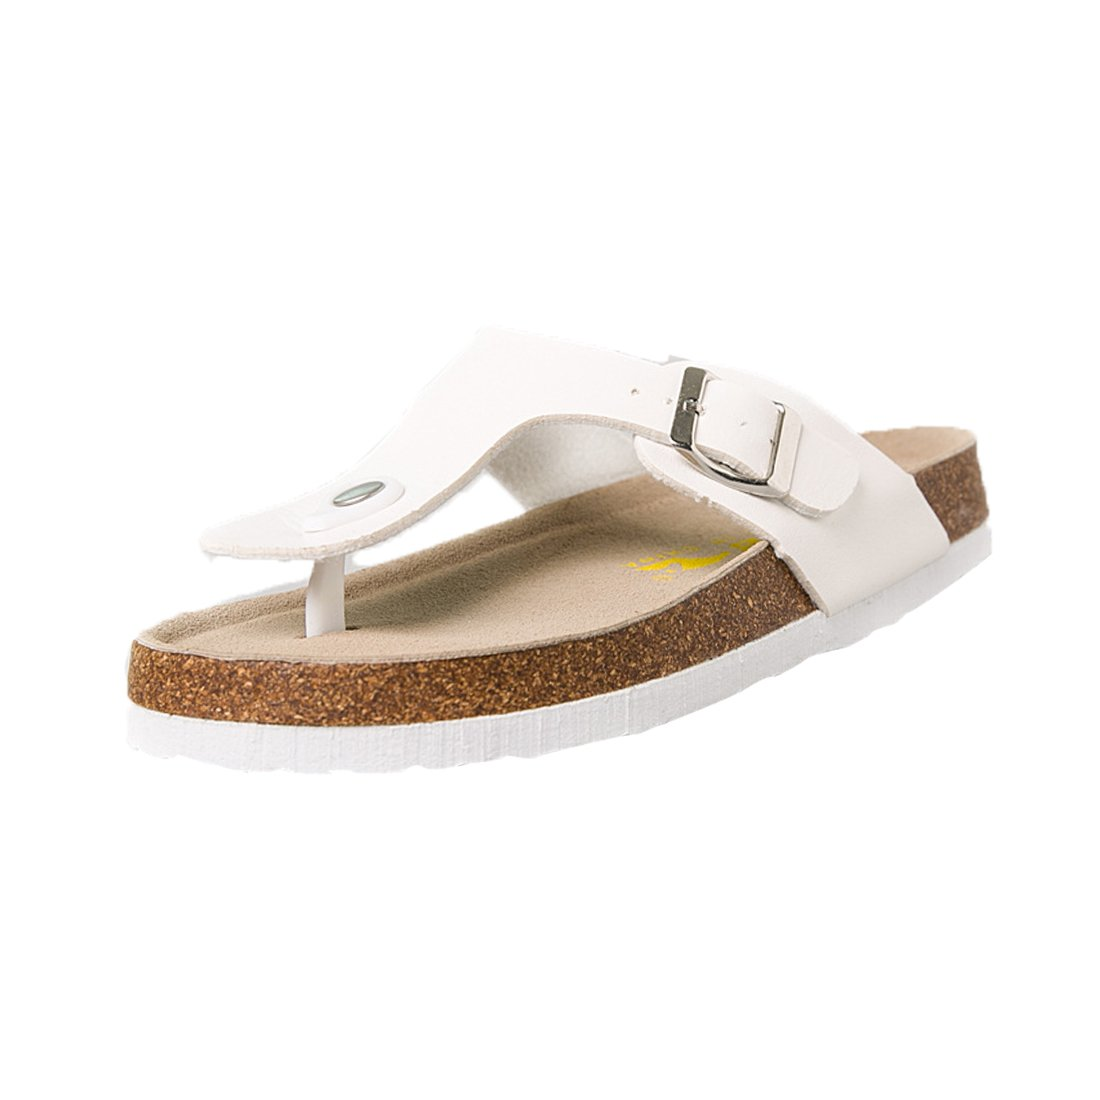 Rockynice Women's Glitter Casual Buckle Thong Slip-On Chunky Platform Wedge Sandal Beach Slides Plus Size B07BC4NZRX 36 EU|White